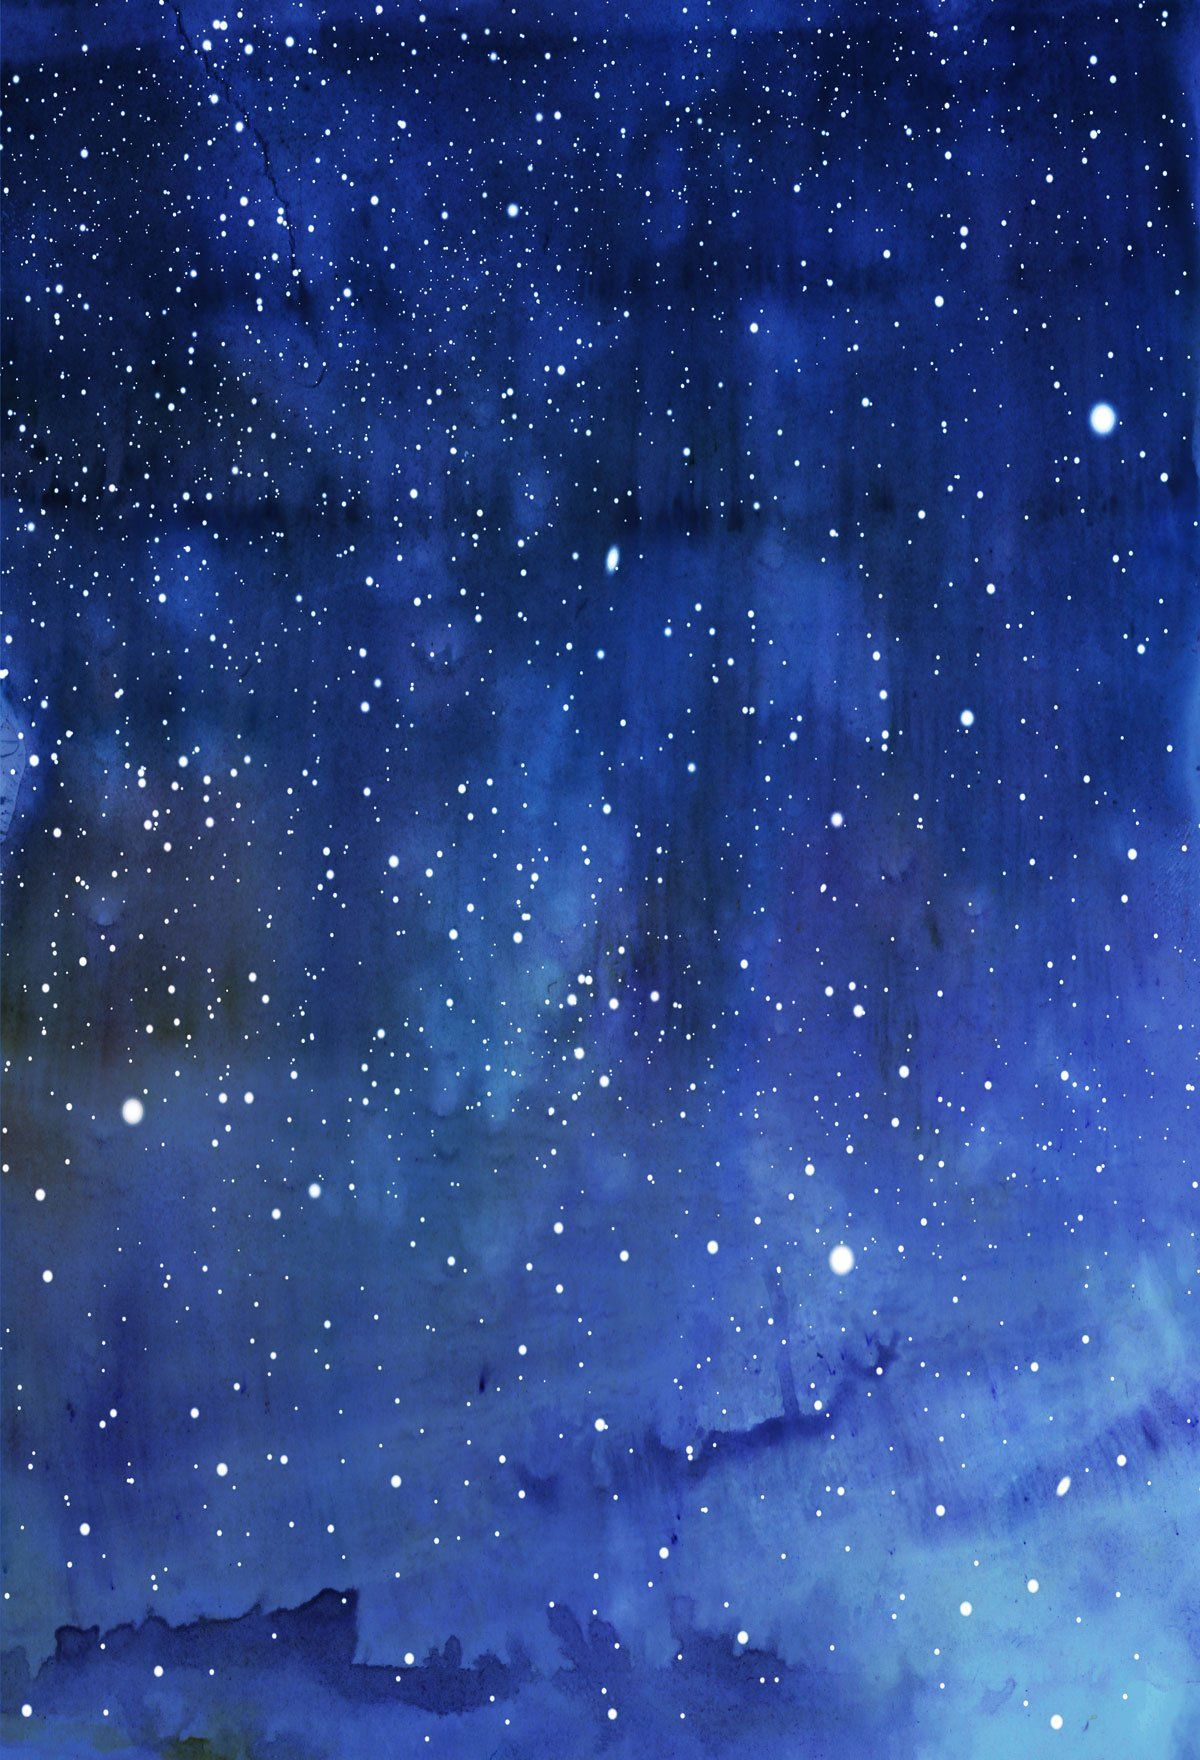 Kate Blue Cloud Backdrop Night Sky Background for Photos